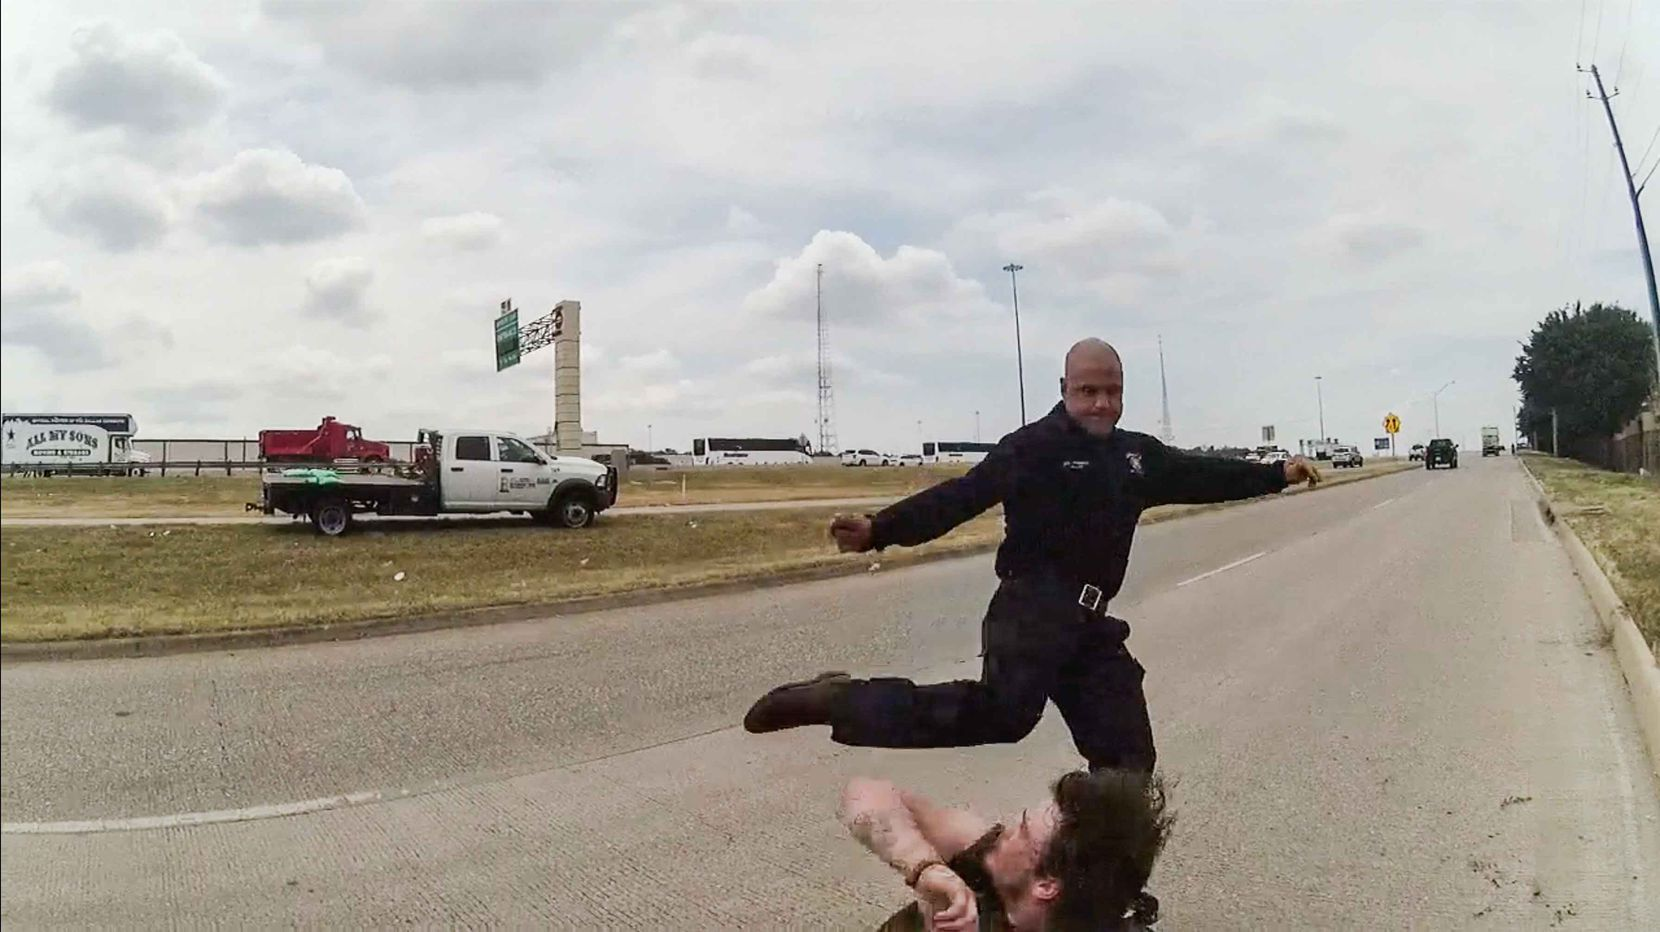 A frame from a police body cam showing  Dallas firefighter Brad Cox during an altercation with Kyle Robert Vess on August 2, 2019.